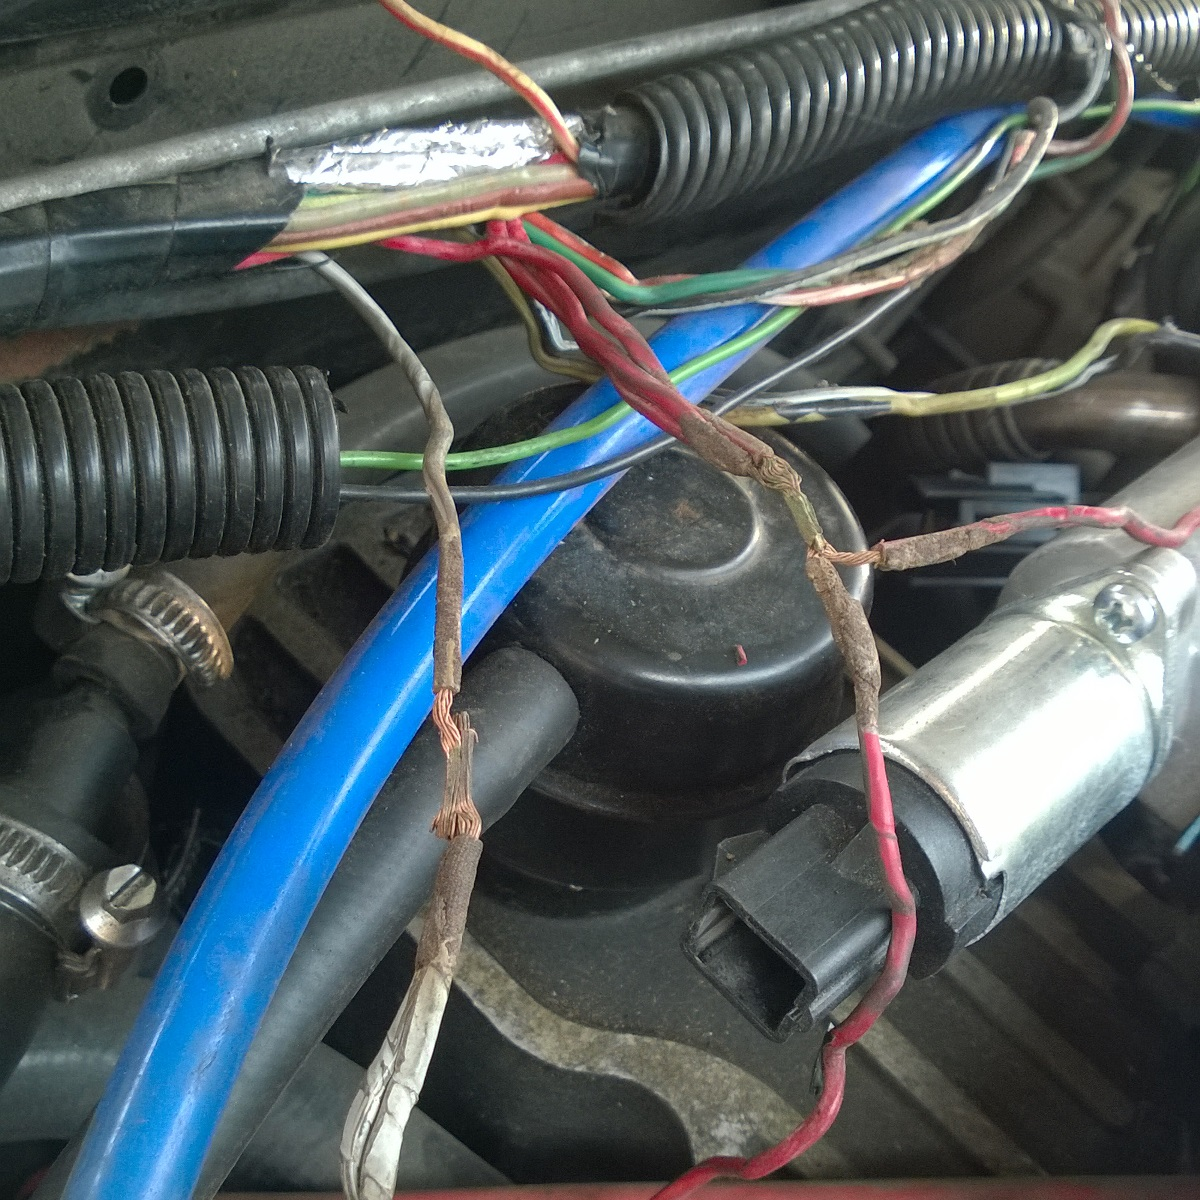 Iac Issues Scorp And Xr Maybe The Eec Iv Chief Knows How To Shielded Wire Harness Back Battery Replacing With New Replaced Diode Connector At While There Are Some Wires In